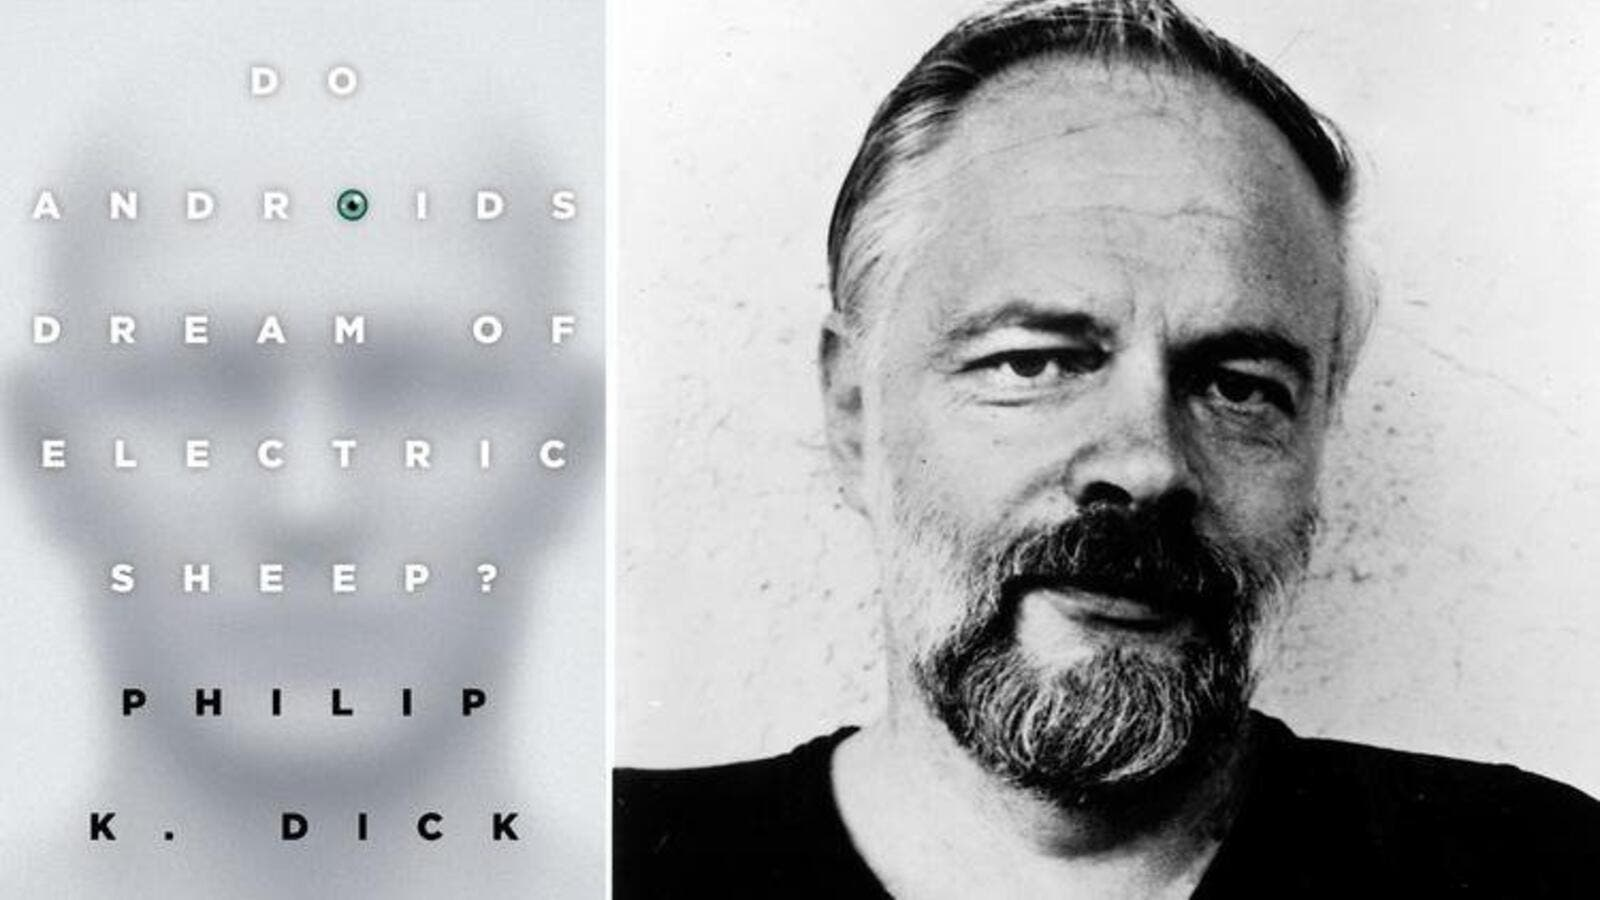 Philip K. Dick's 'Do Androids Dream of Electric Sheep' (Twitter)